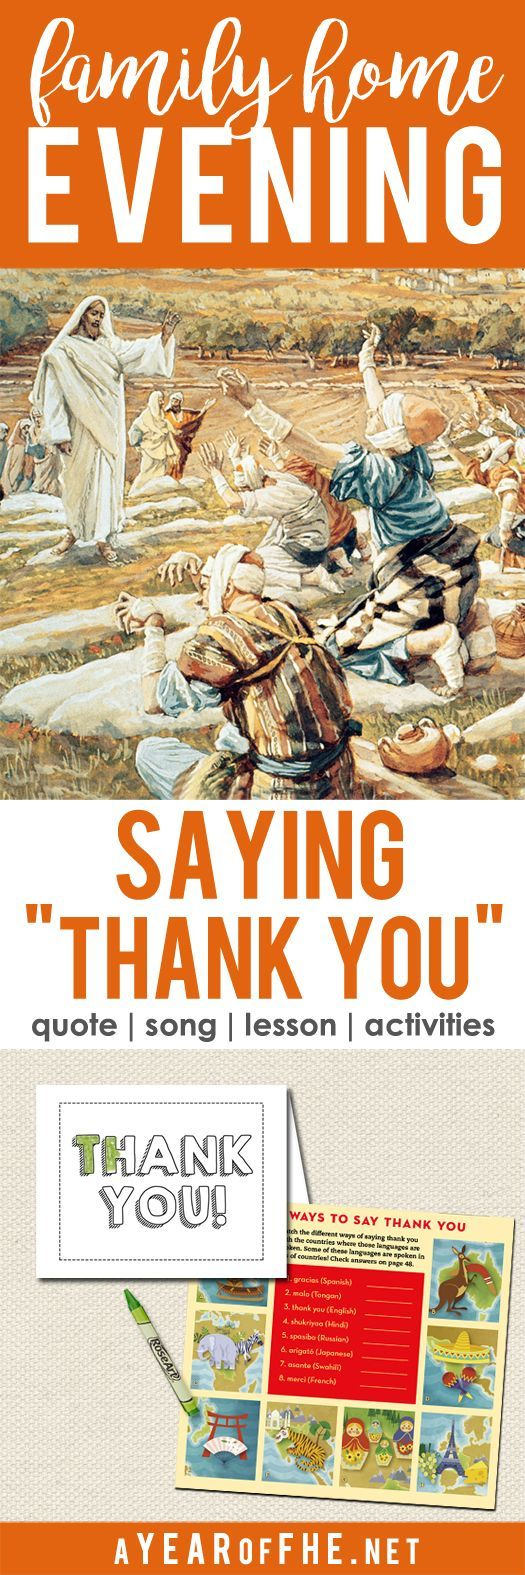 "A Year of FHE // a Family Home Evening lesson about about the importance of saying ""Thank You"" to those who help us. Includes the story of the 10 Lepers. Includes Lesson, quote, song, and two activites, including a free downloadable THANK YOU card for kids to give their church leaders, parents, or friends.  #lds #thankfulness #thanksgiving"